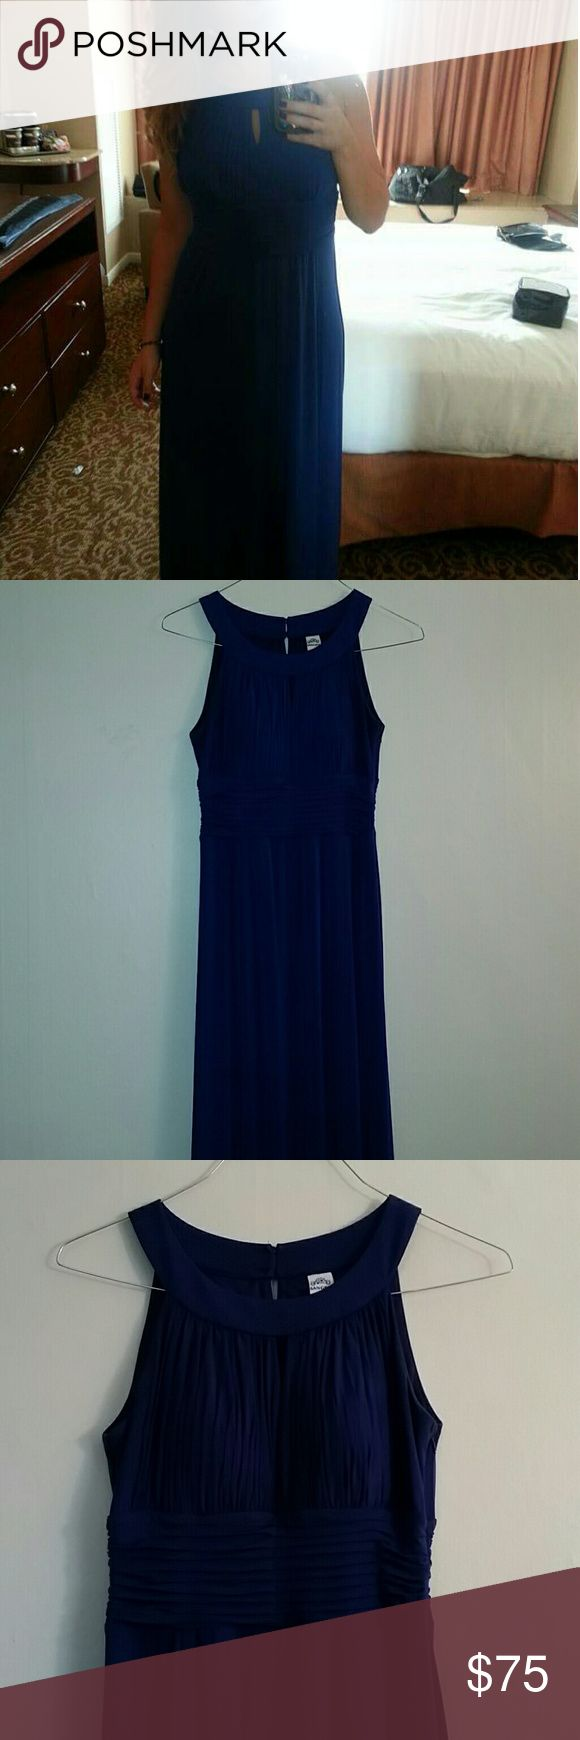 """Evening Gown Dark corn blue evening dress. Falls straight down. Scrunched horizontally at the waist, vertically across the breasts with a small keyhole in the middle. Thin padding so no need for a bra. Zipper on right side, two buttons on the back of neckline to close. Worn a few times but no rips, tears or stains. I'm 5'3"""" and typically wear 6"""" heels with the dress. (Added two stock photos to show design better. My dress is blue.) Sangria Dresses Wedding"""